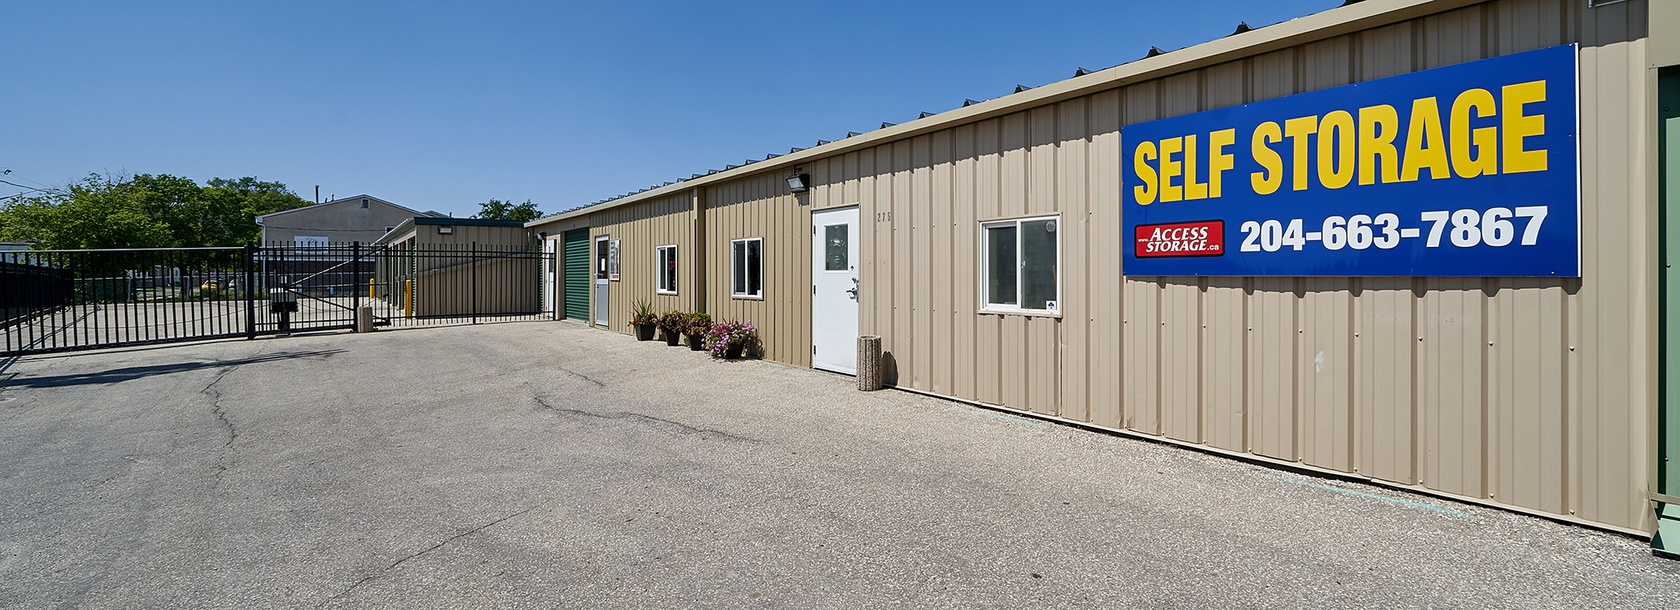 Rent Winnipeg storage units at 275 Gordon Ave. We offer a wide-range of affordable self storage units and your first 4 weeks are free!